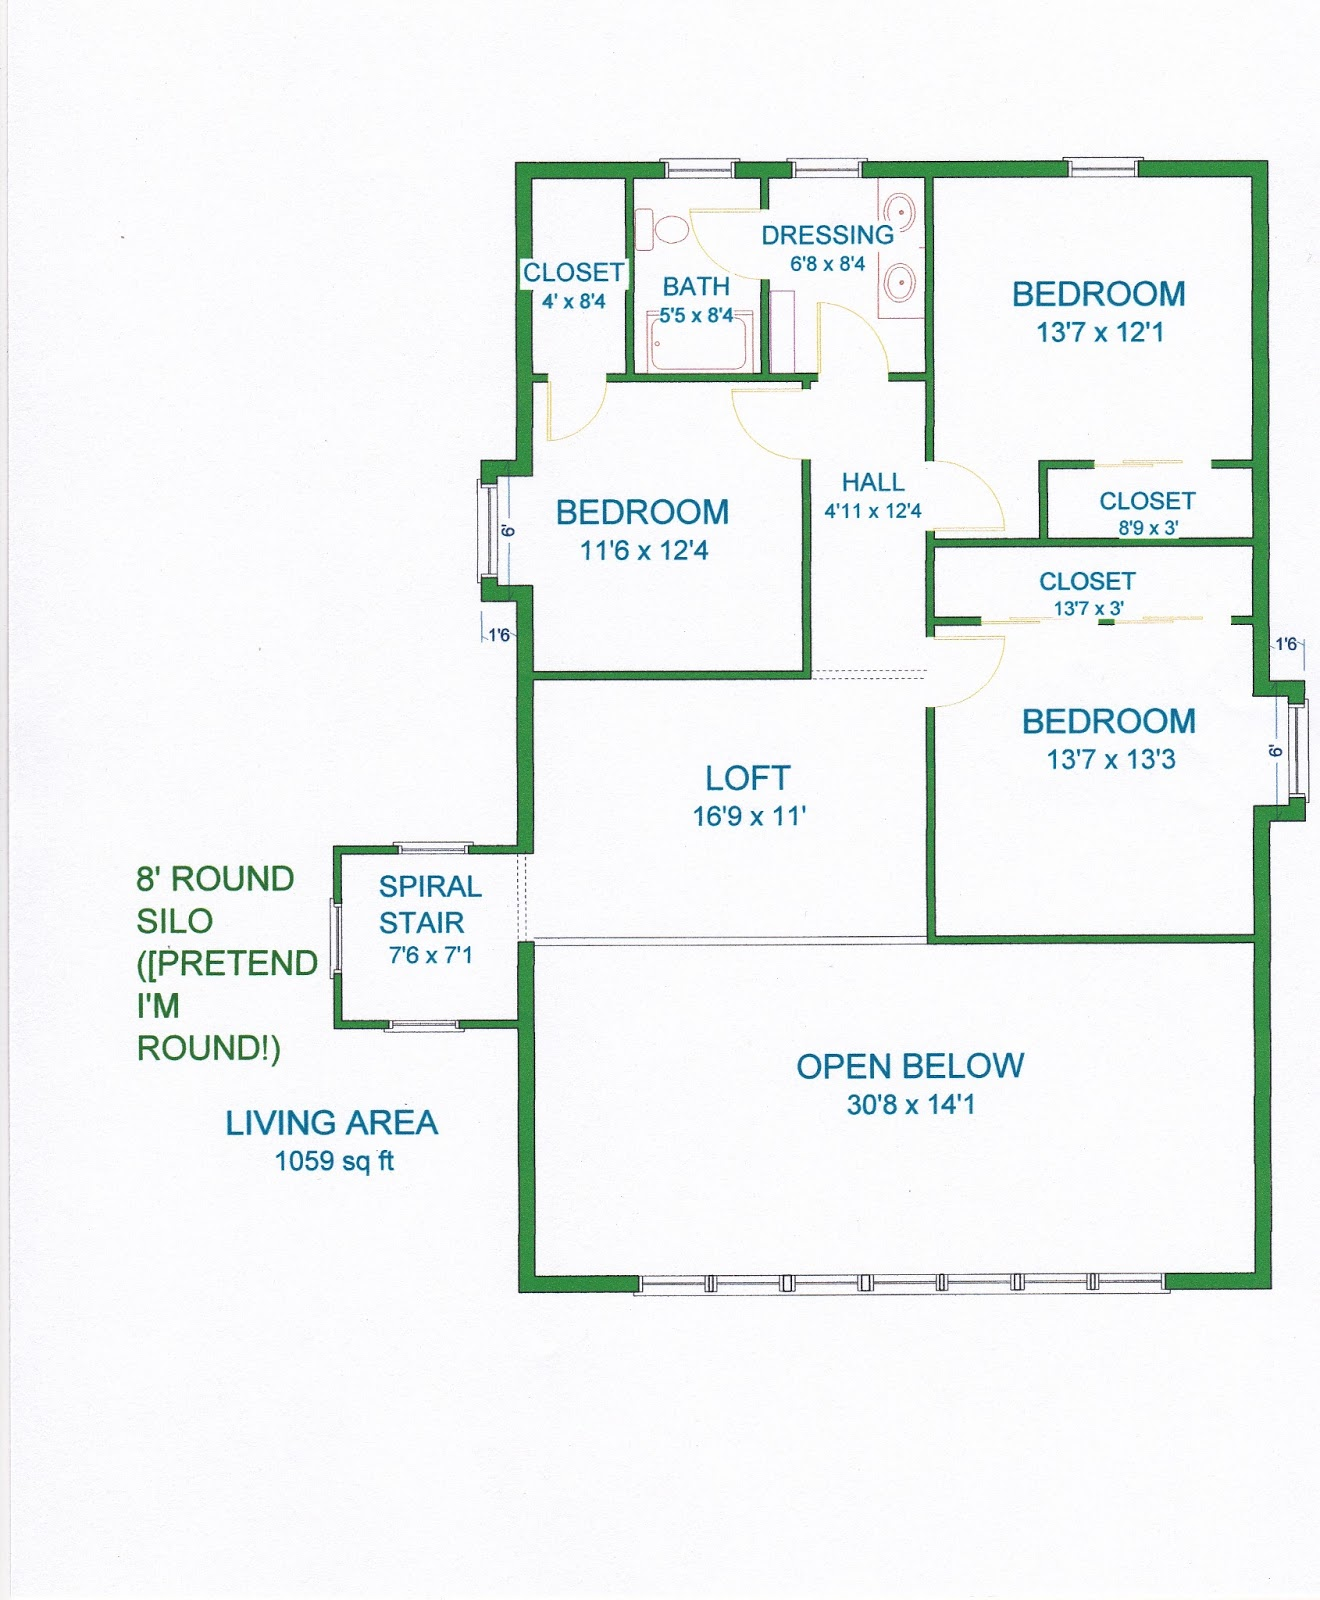 Grama Sue's Floor Plan Play Land: February 2013 on house floor plans 16x16, house floor plans 28x42, house floor plans 30x40, house floor plans 24x40, house floor plans 12x24,